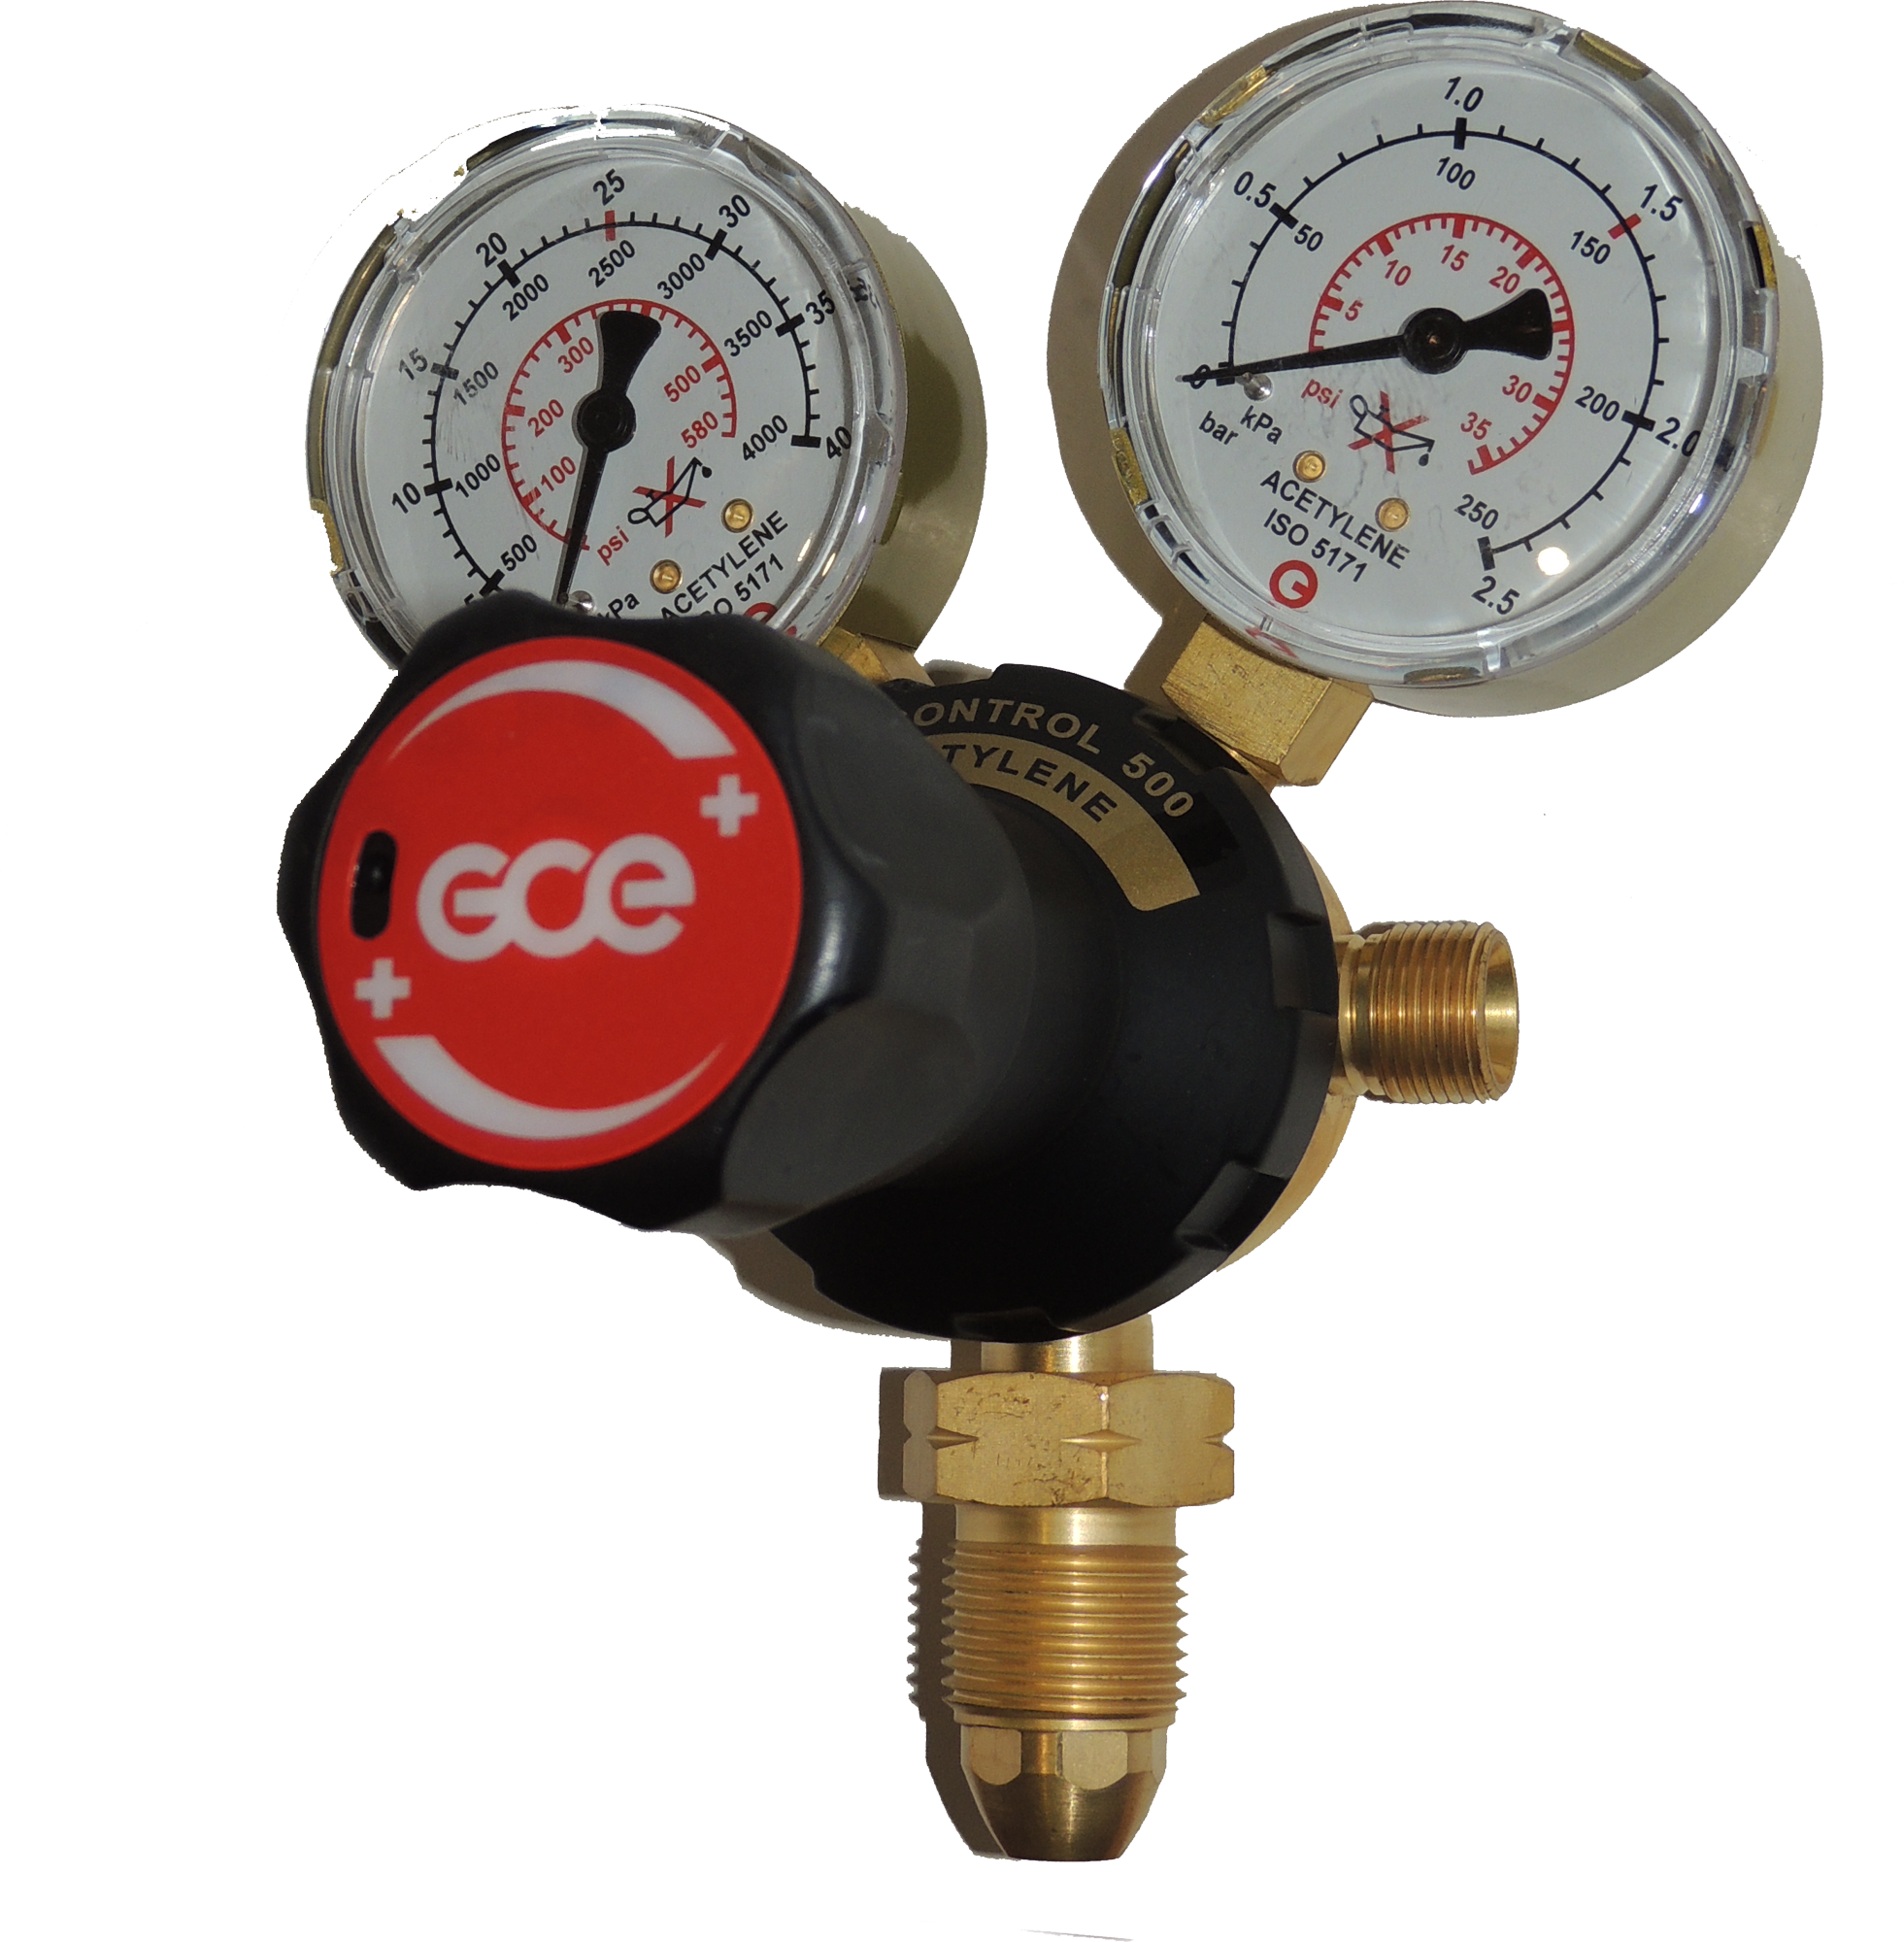 GCE Acetylene Regulator Single Stage 2 Gauge BOC